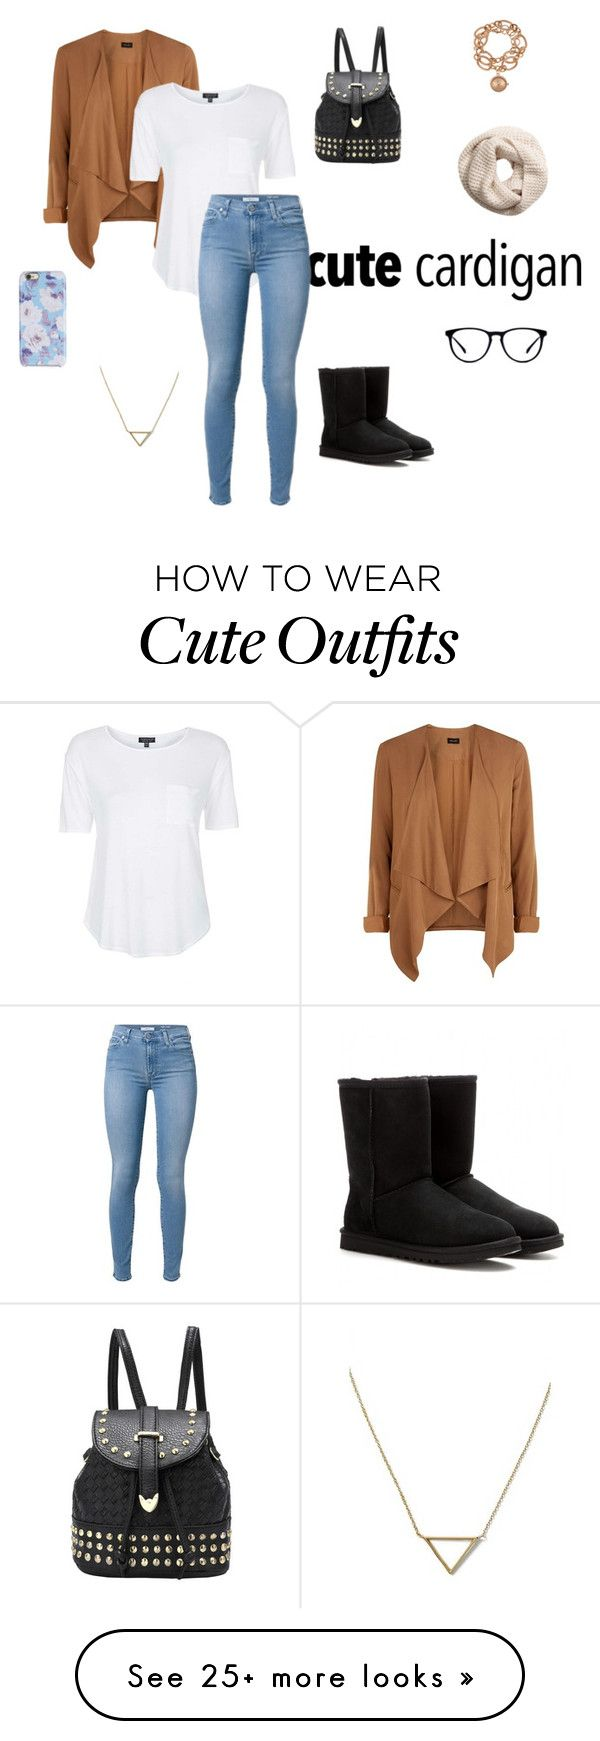 """Cute cardigan outfit!"" by melodie-brisebois on Polyvore featuring Topshop, UGG Australia, Isaac Mizrahi, H&M, Louis Arden and Banana Republic"